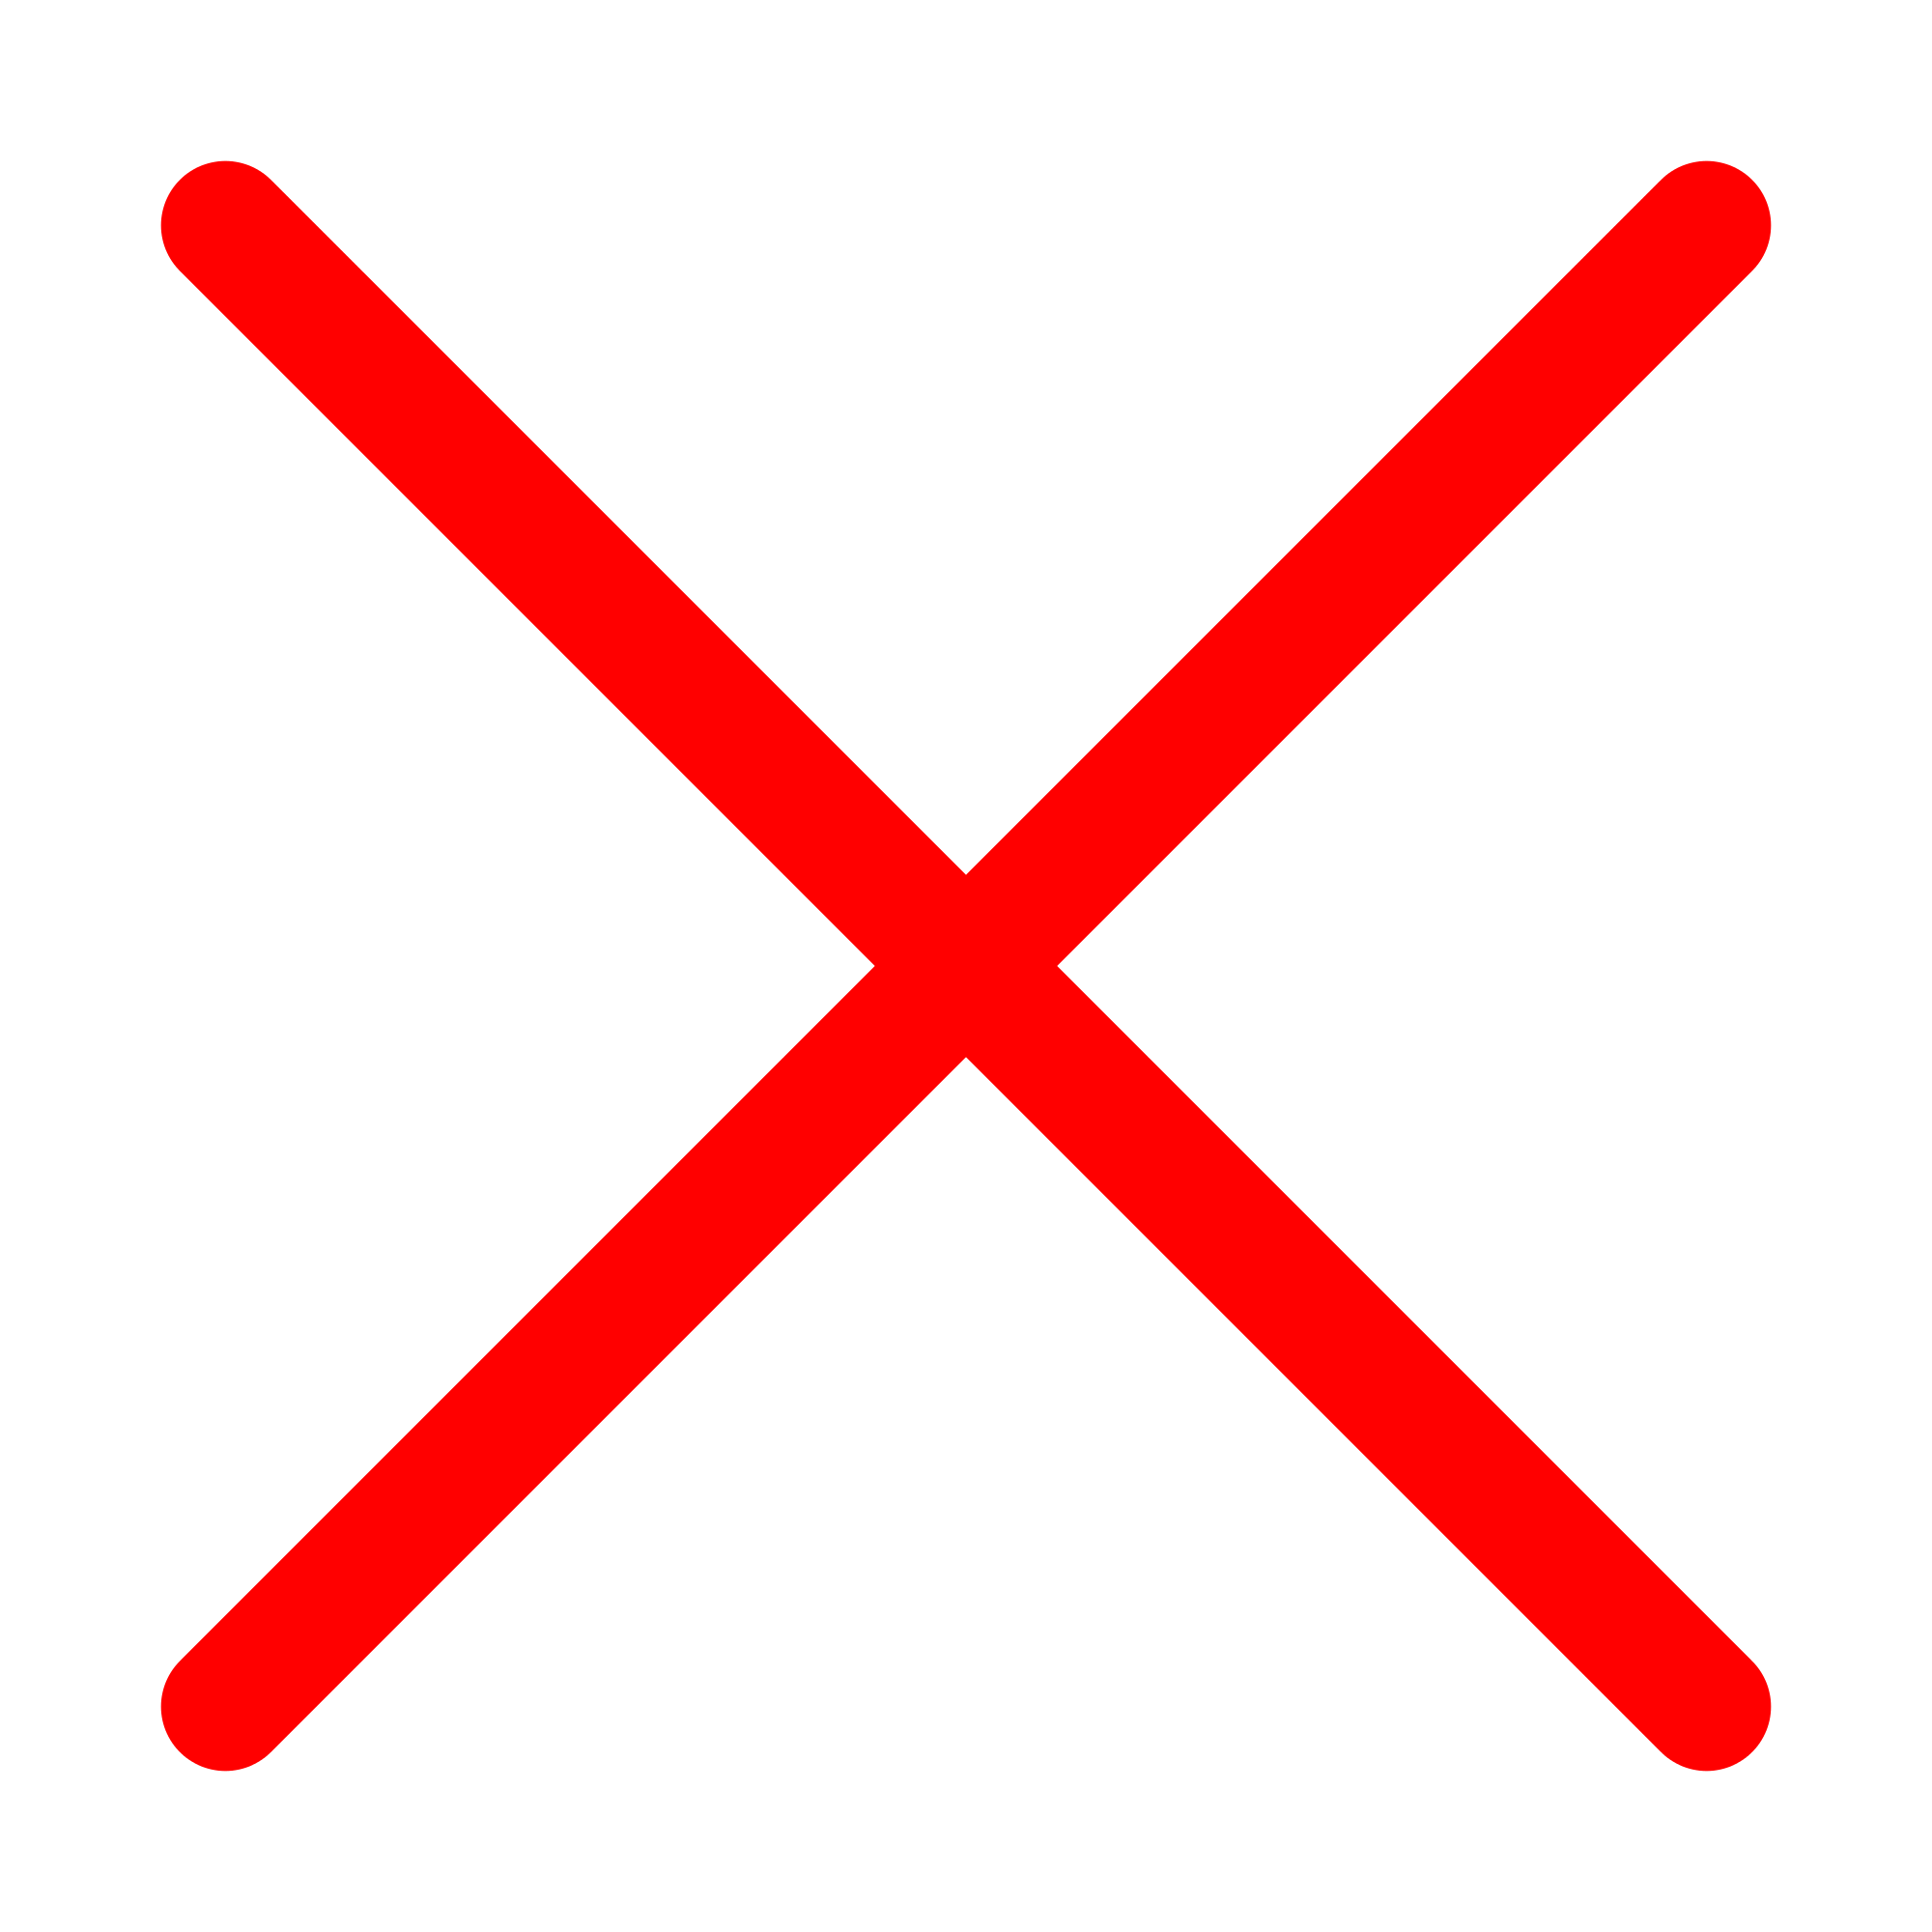 Red png images transparent. Cross clipart file